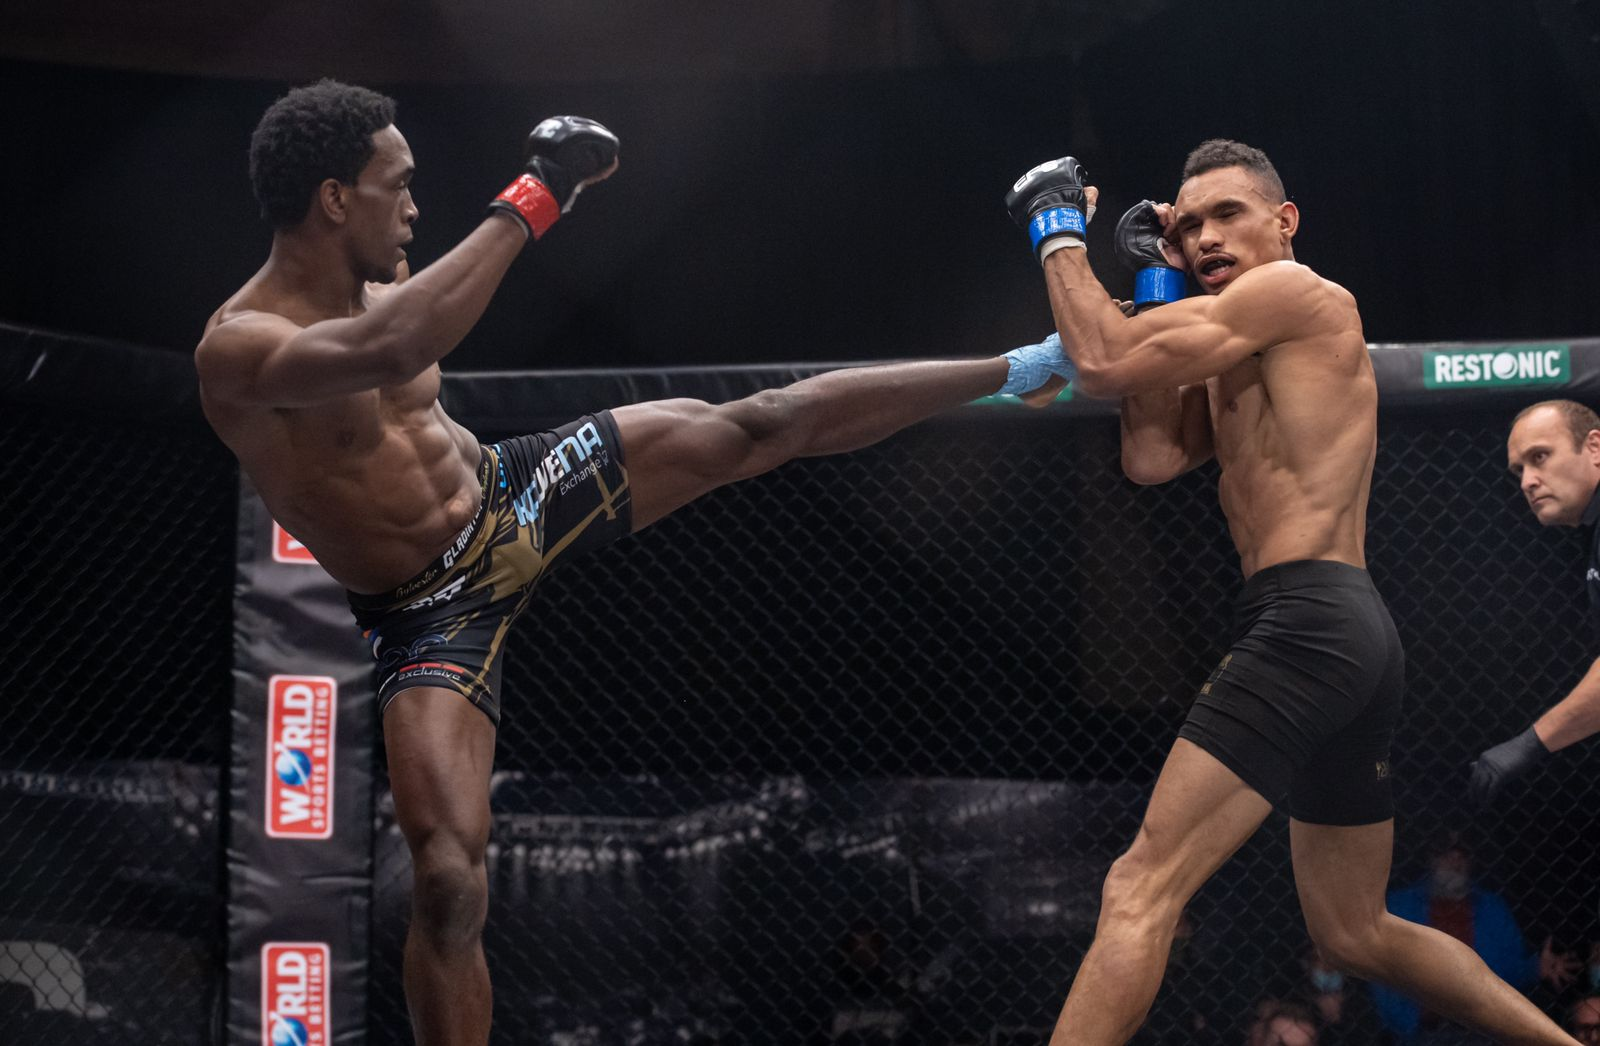 MMA Bantamweight Title Fight between Sylvester Chipfumbu and Faeez Jacobs at EFC 85